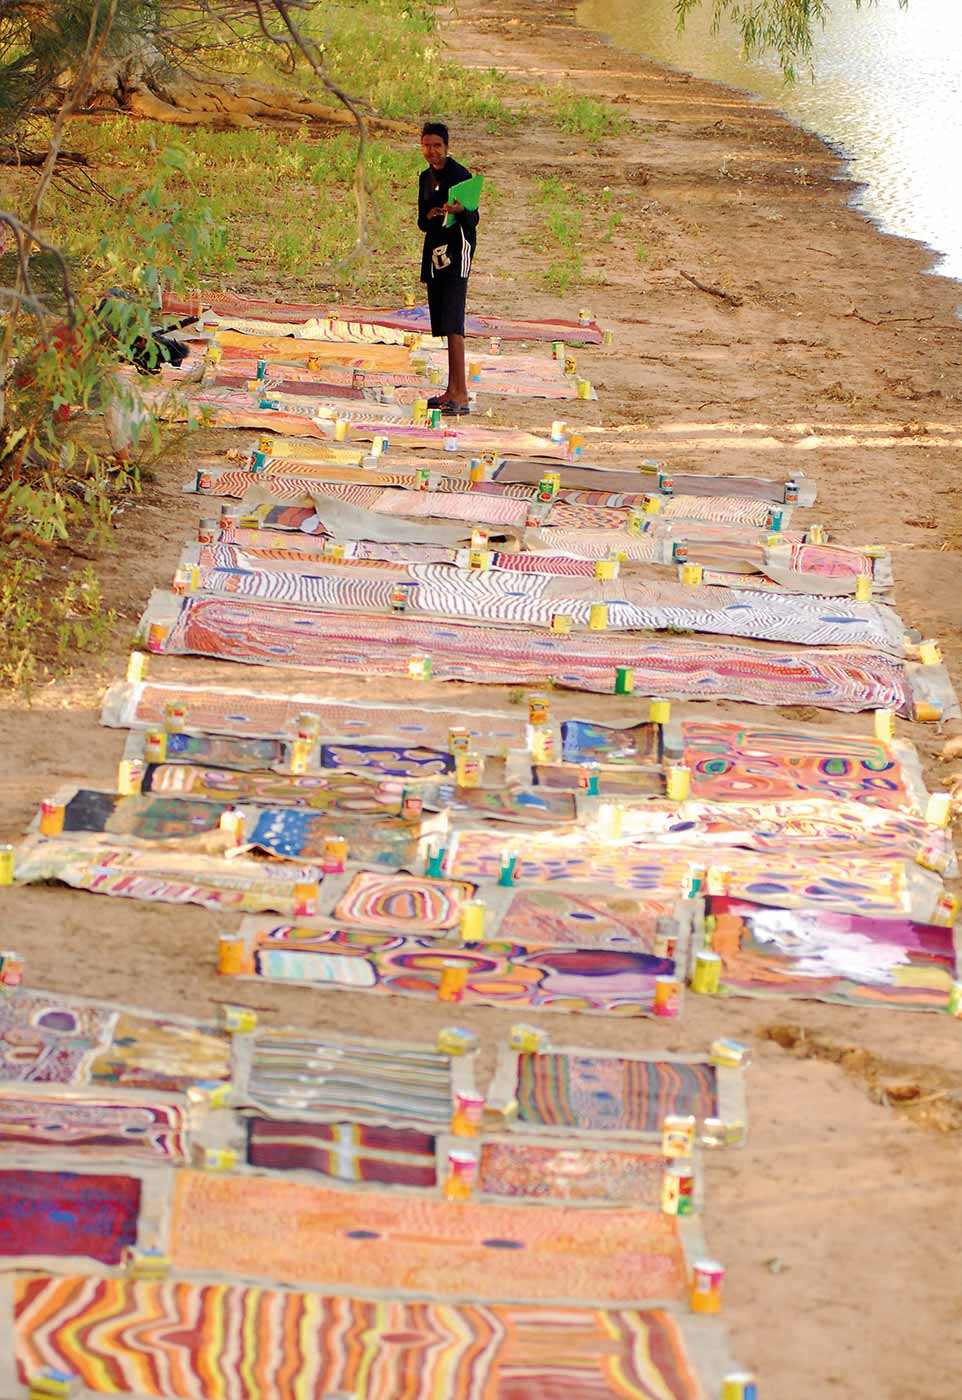 Co-curator Hayley Atkins at Nyarna (Lake Stretch) with paintings created along the stock route. - click to view larger image